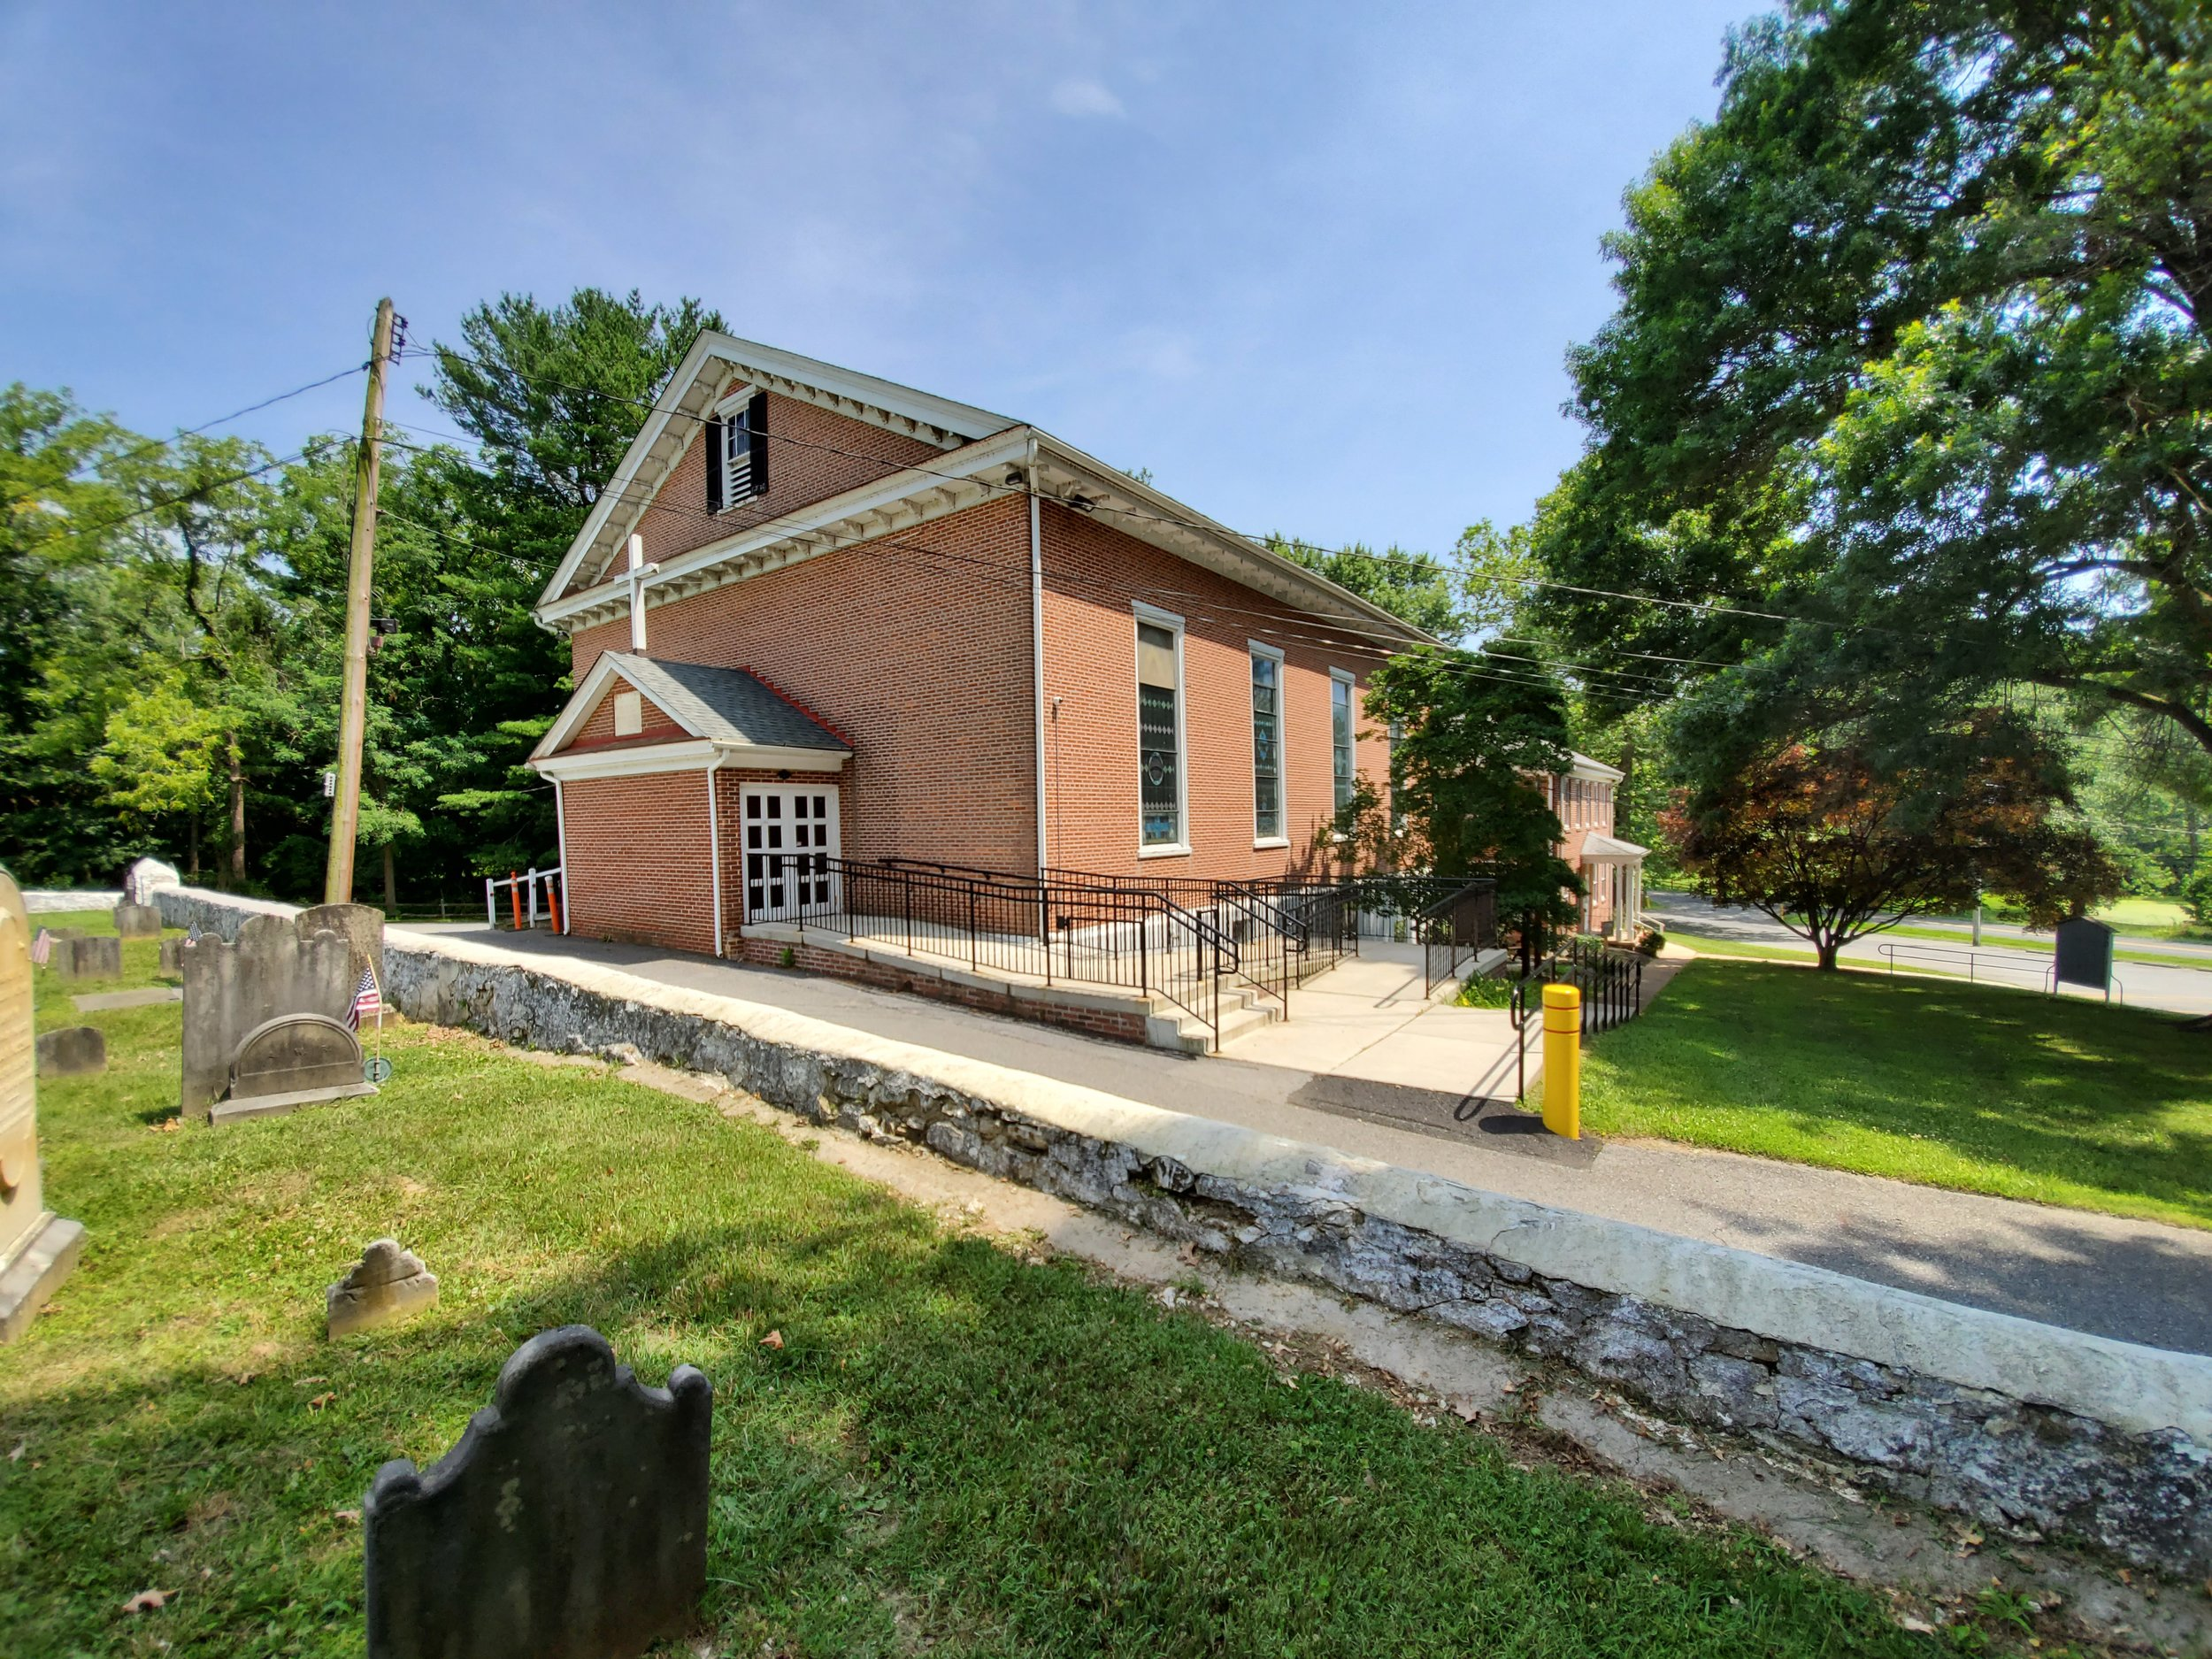 Head of Christiana Presbyterian Church, near Newark, Delaware, where George Gillespie served as pastor. Photo credit: R. Andrew Myers